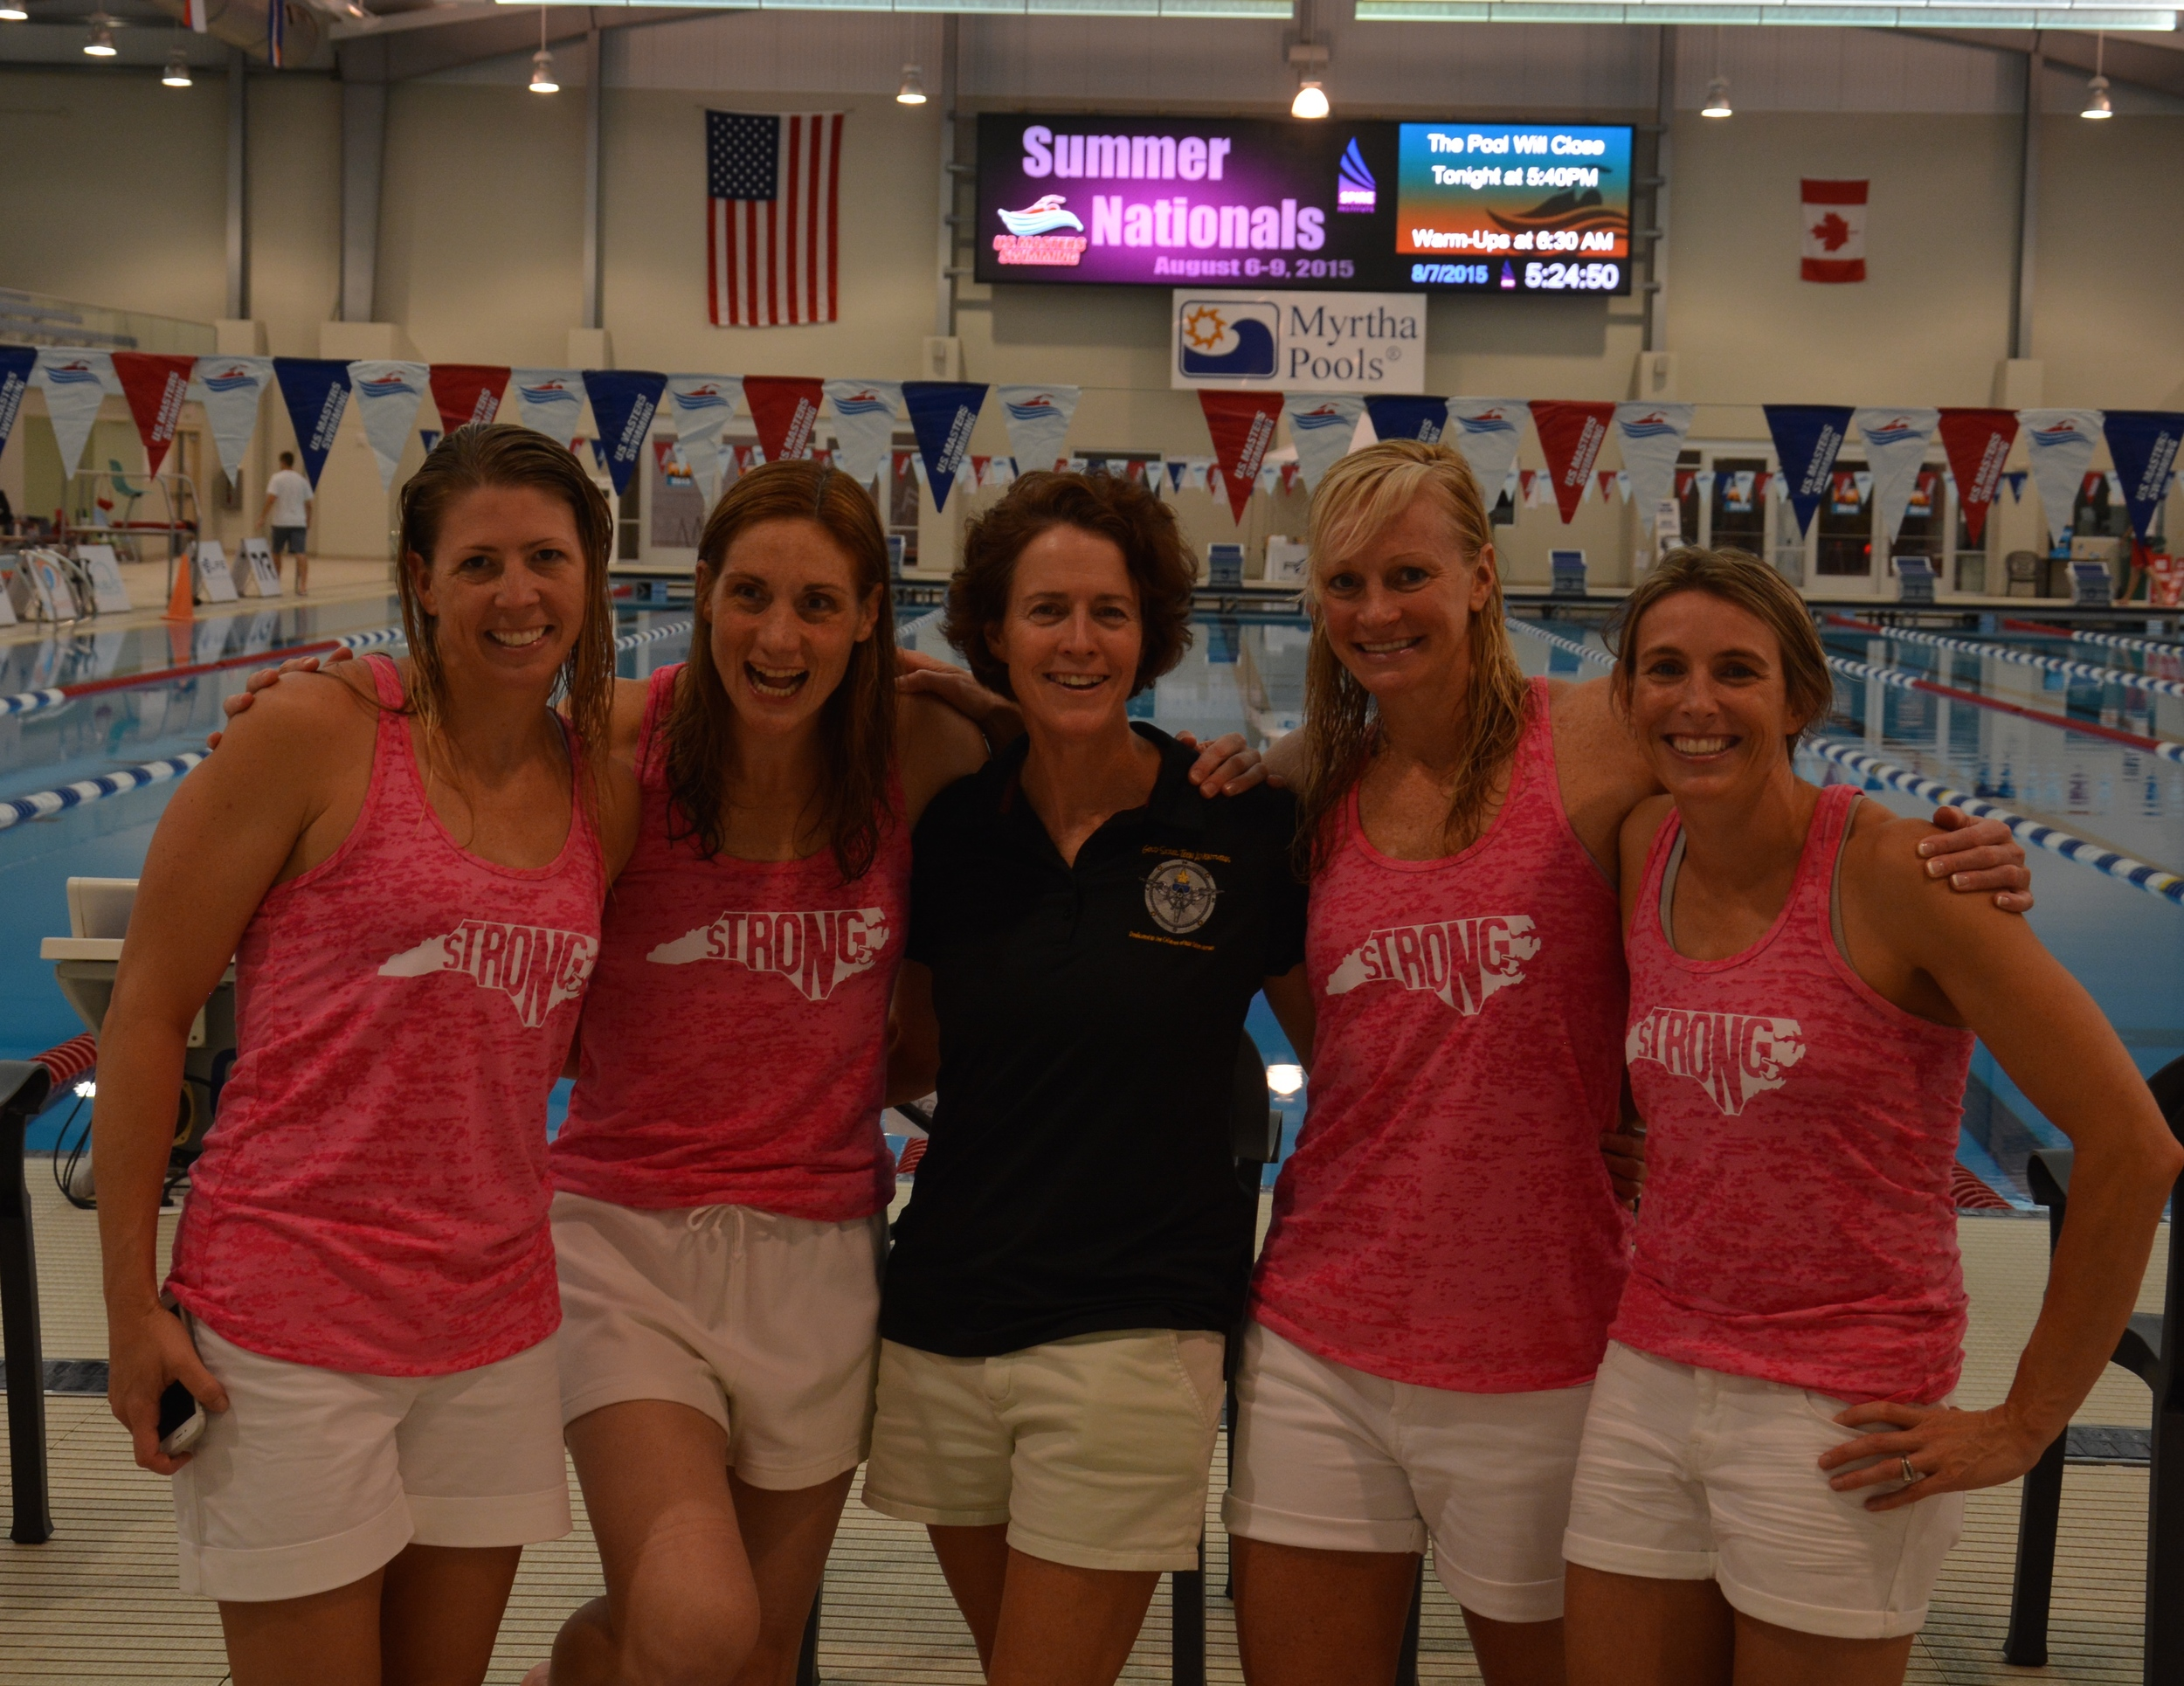 North Carolina women representing at Masters Nationals!